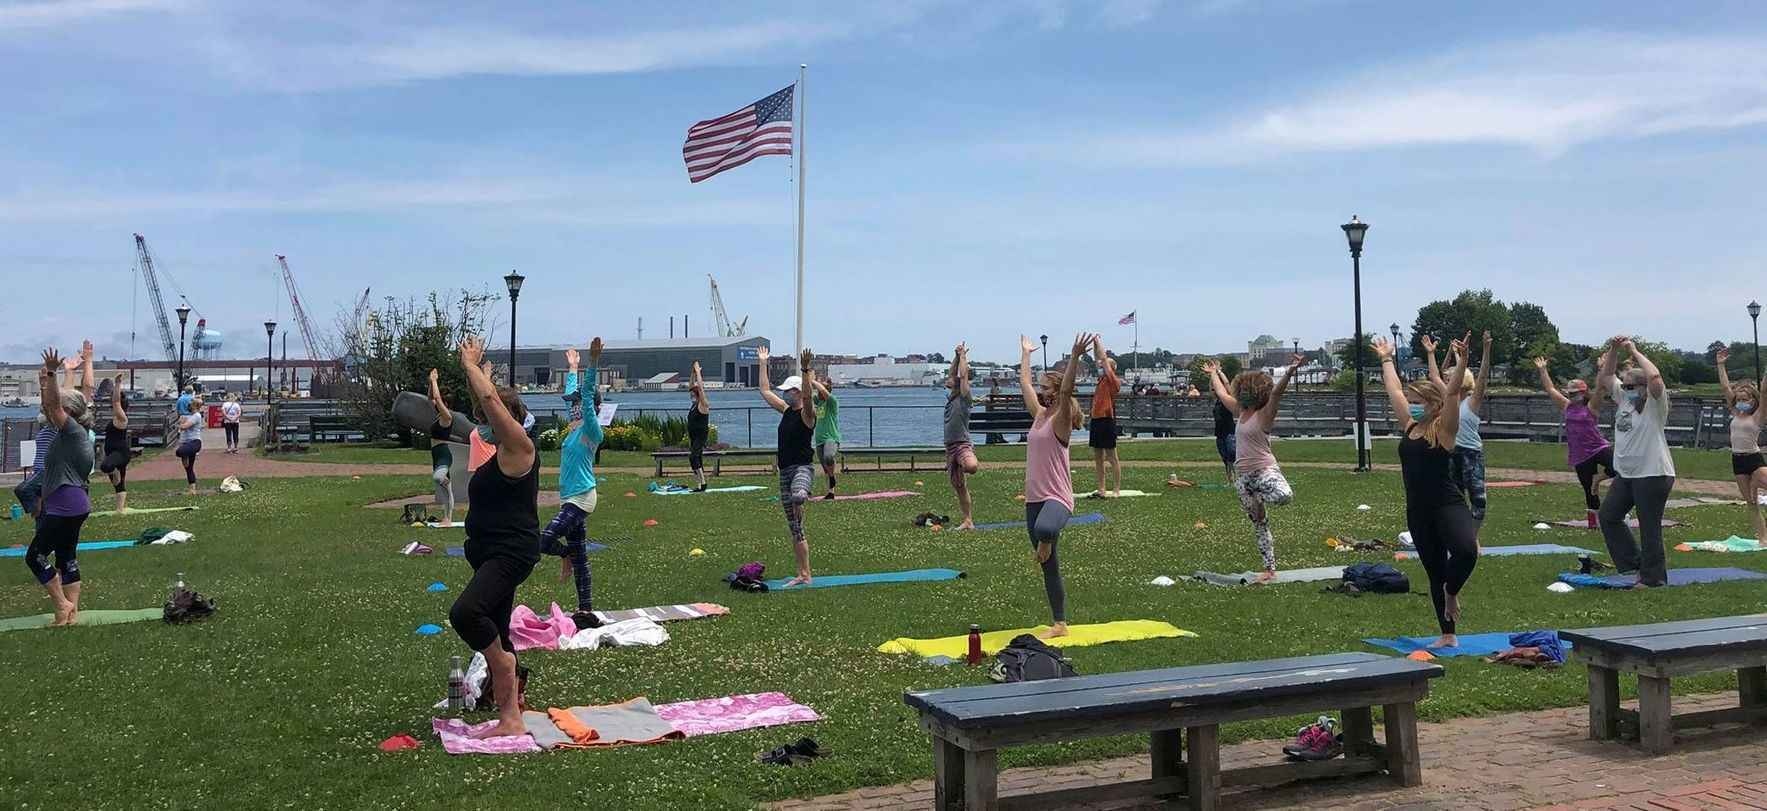 Please donate to provide the healing power of yoga to those in need! image